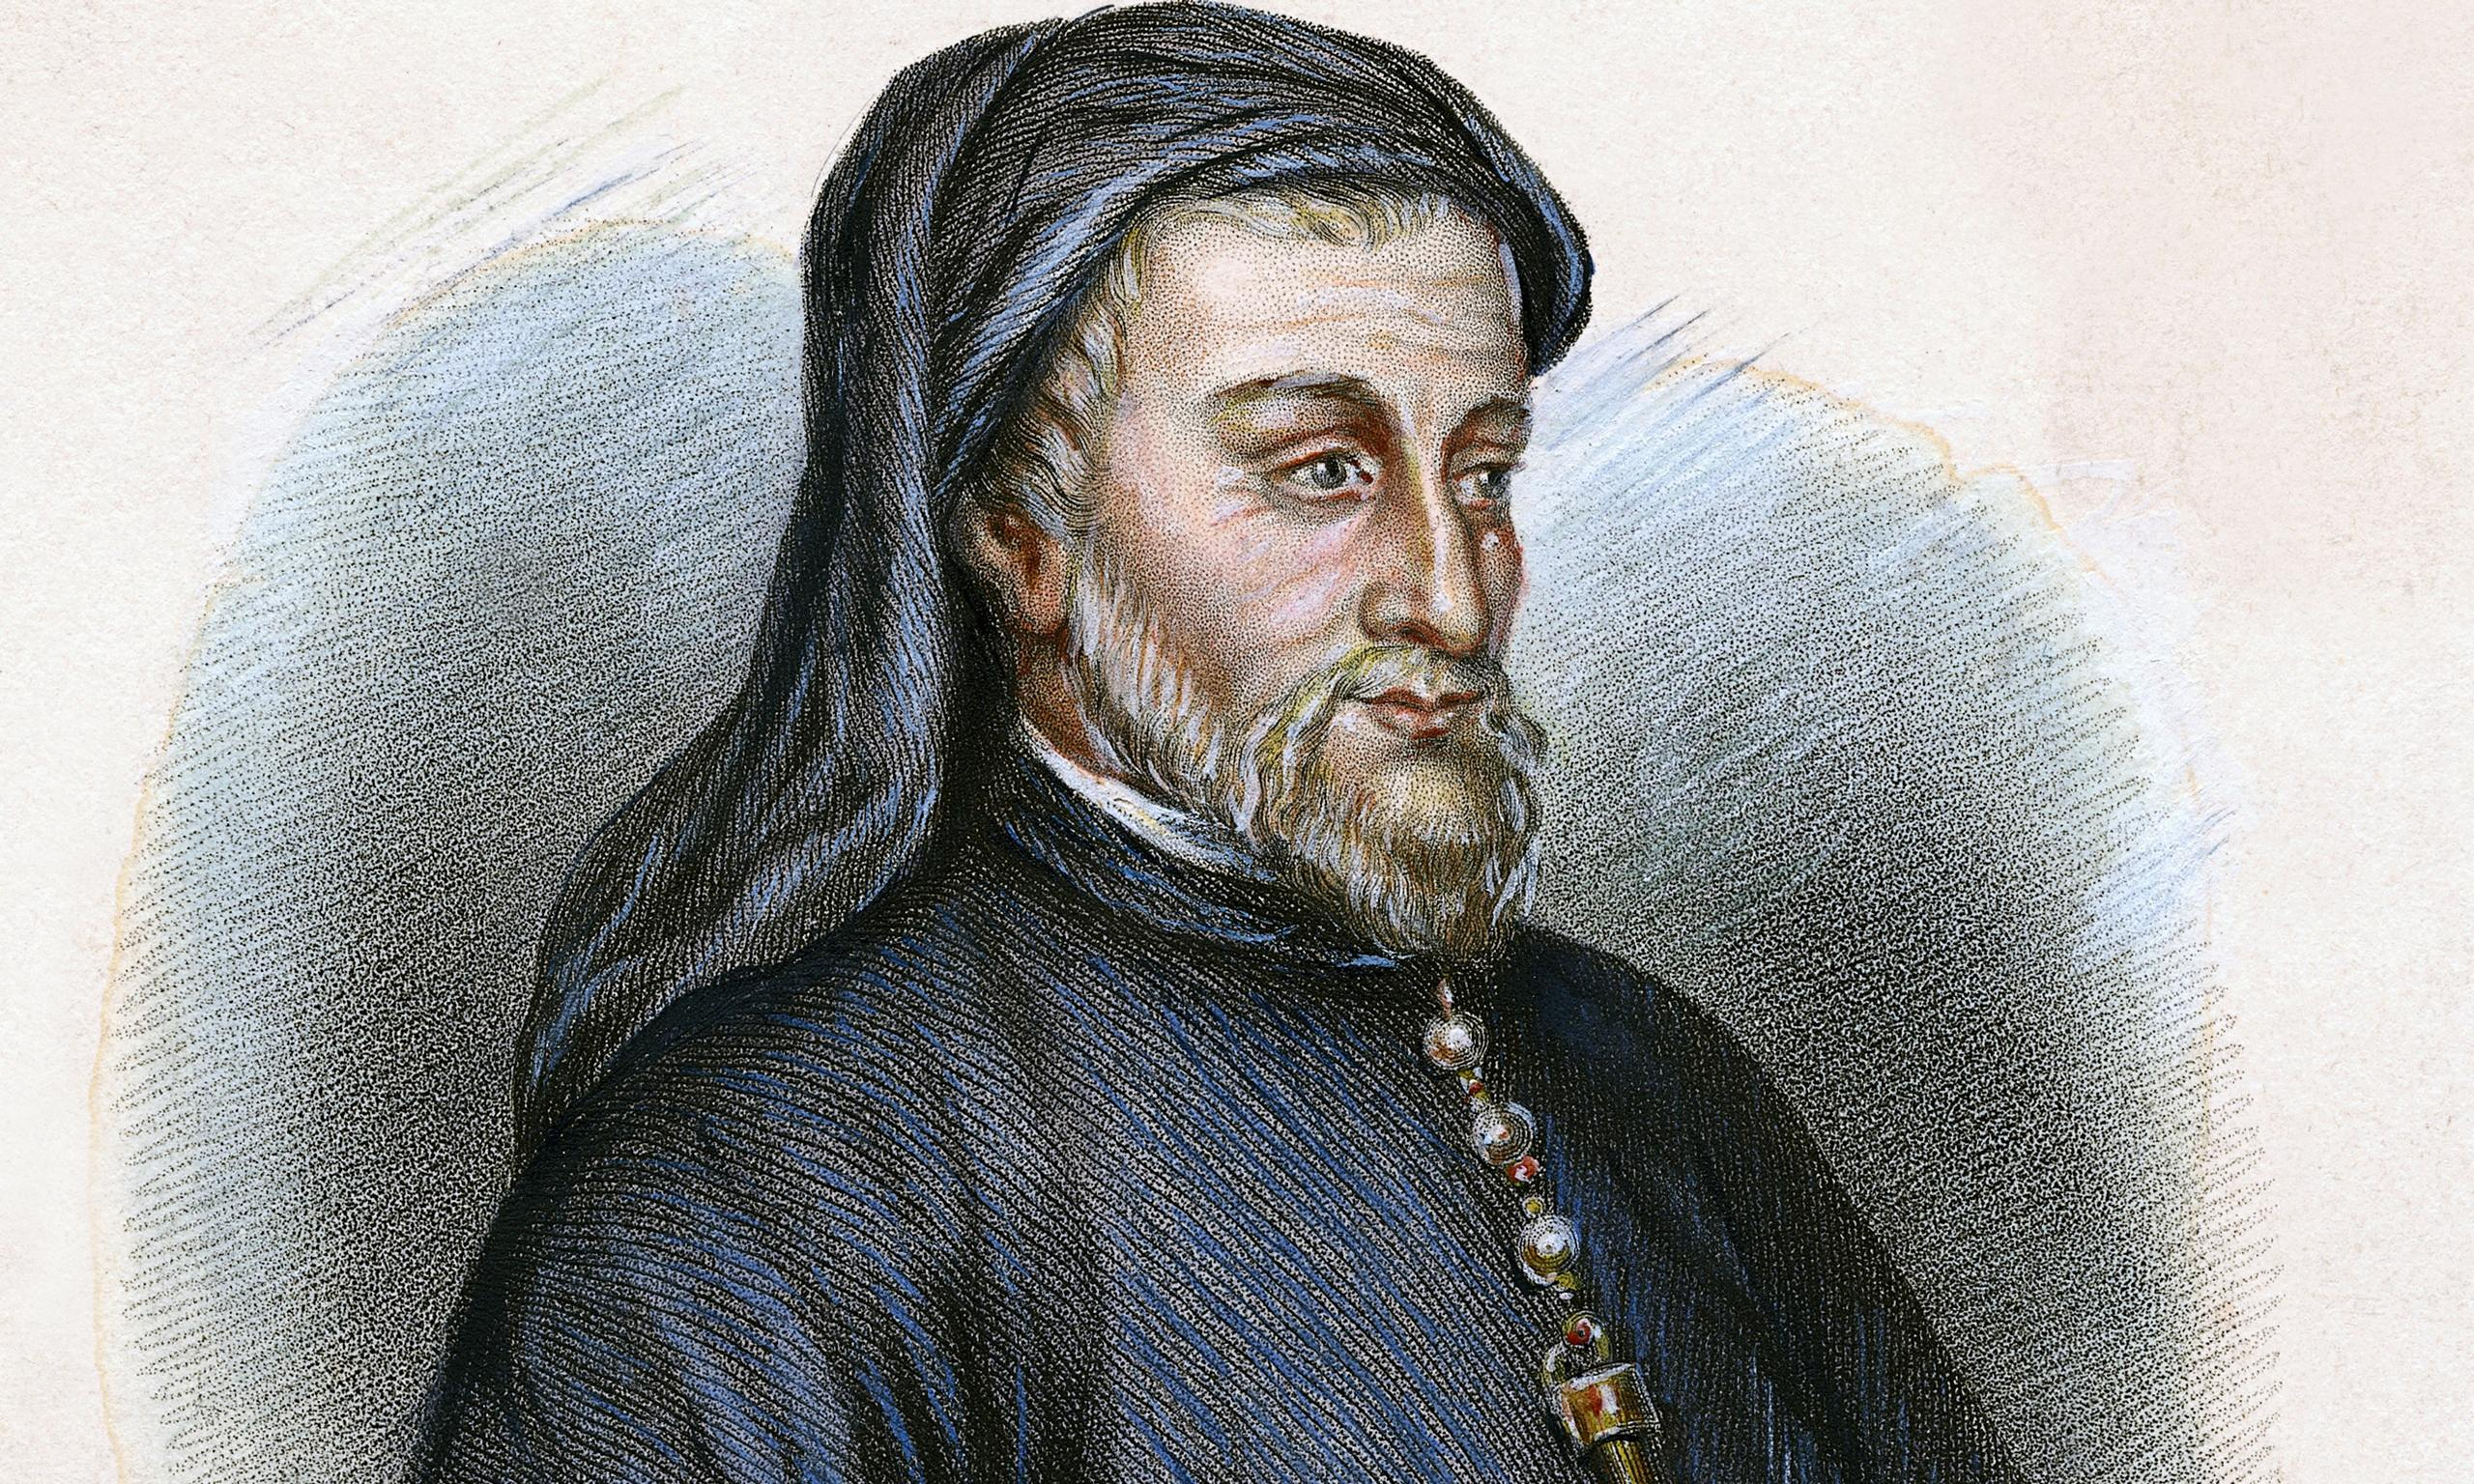 geoffrey chaucer Geoffrey chaucer (1343 - 25 october 1400), known as the father of english literature, is widely considered the greatest english poet of the middle ages and was the 1st poet to have been buried in poets' corner of westminster abbey.